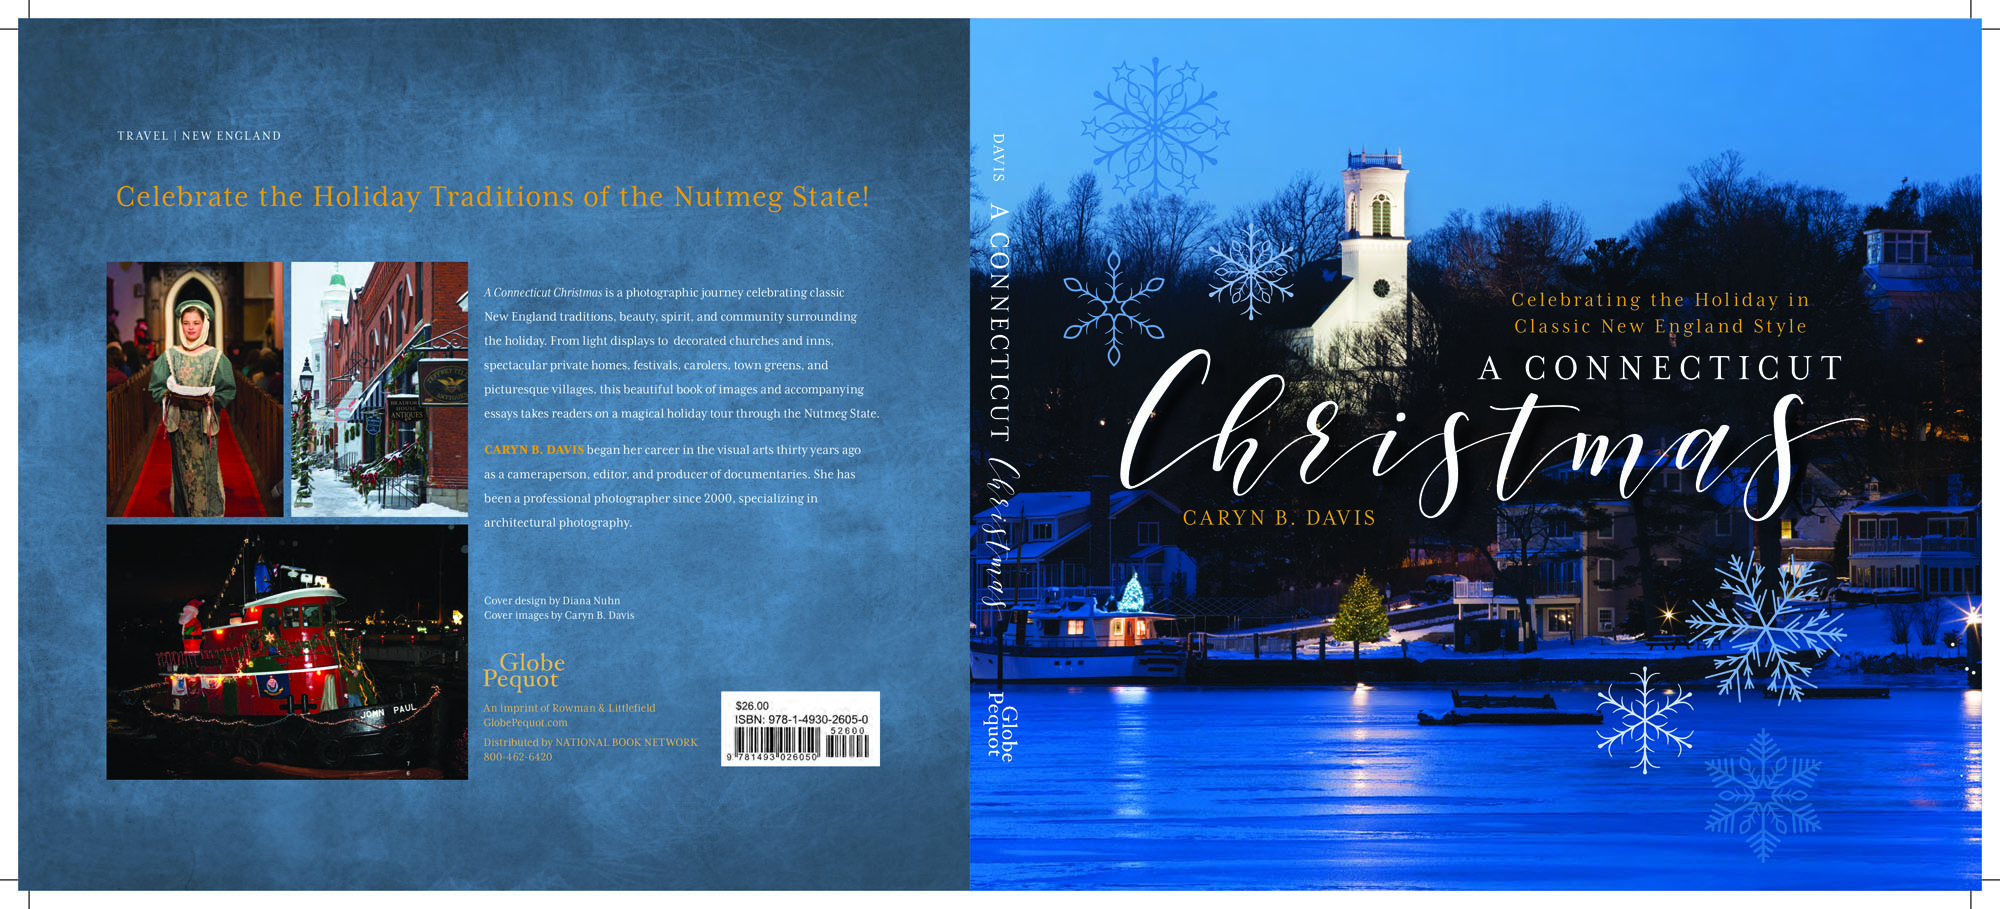 A Connecticut Christmas by Caryn B. Davis. Globe Pequot, 2017.